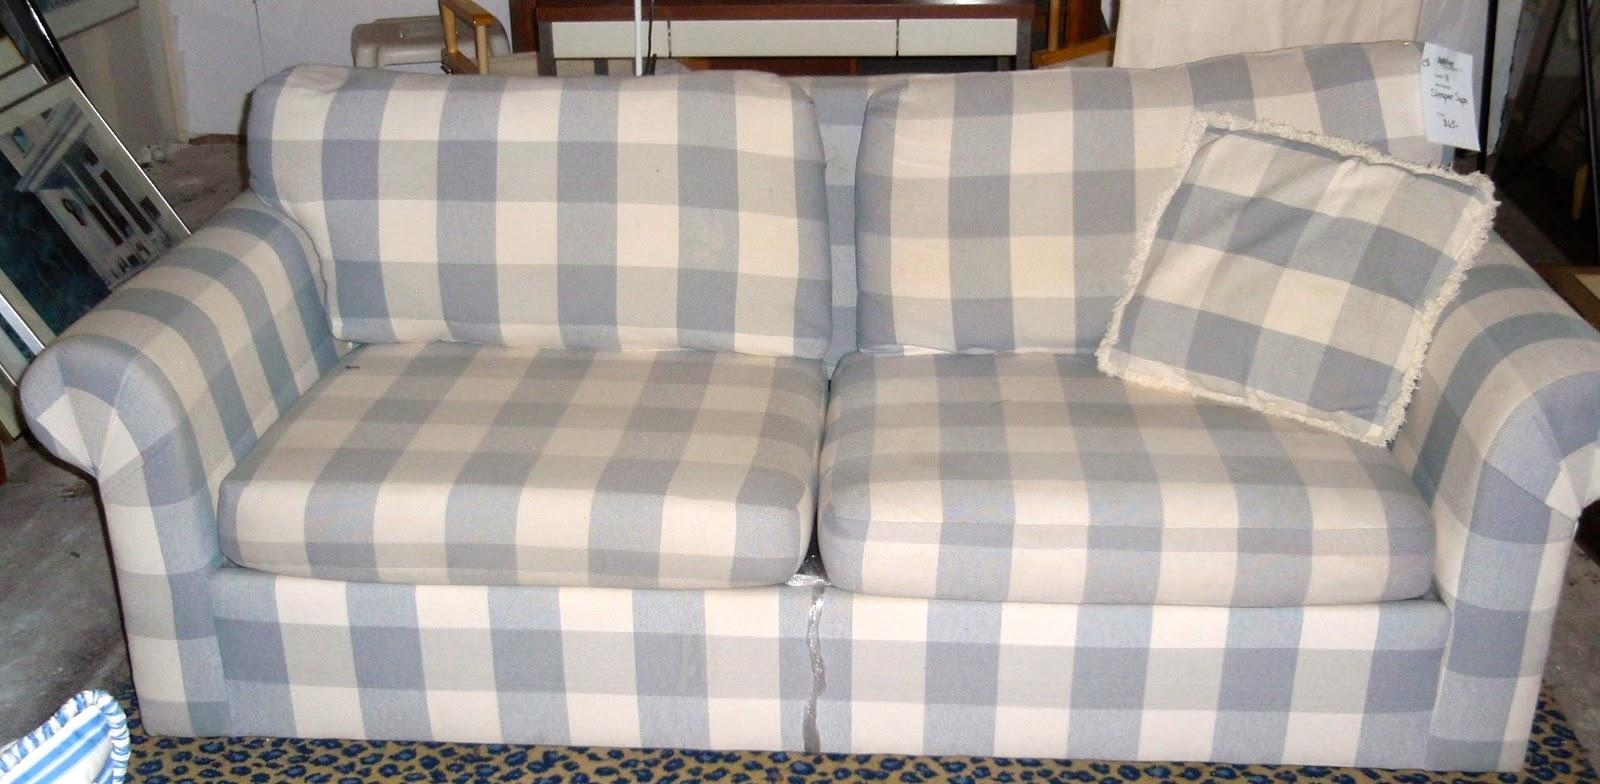 Blue Plaid Sofa With Ideas Hd Images 26160 | Kengire Within Blue Plaid Sofas (View 2 of 20)